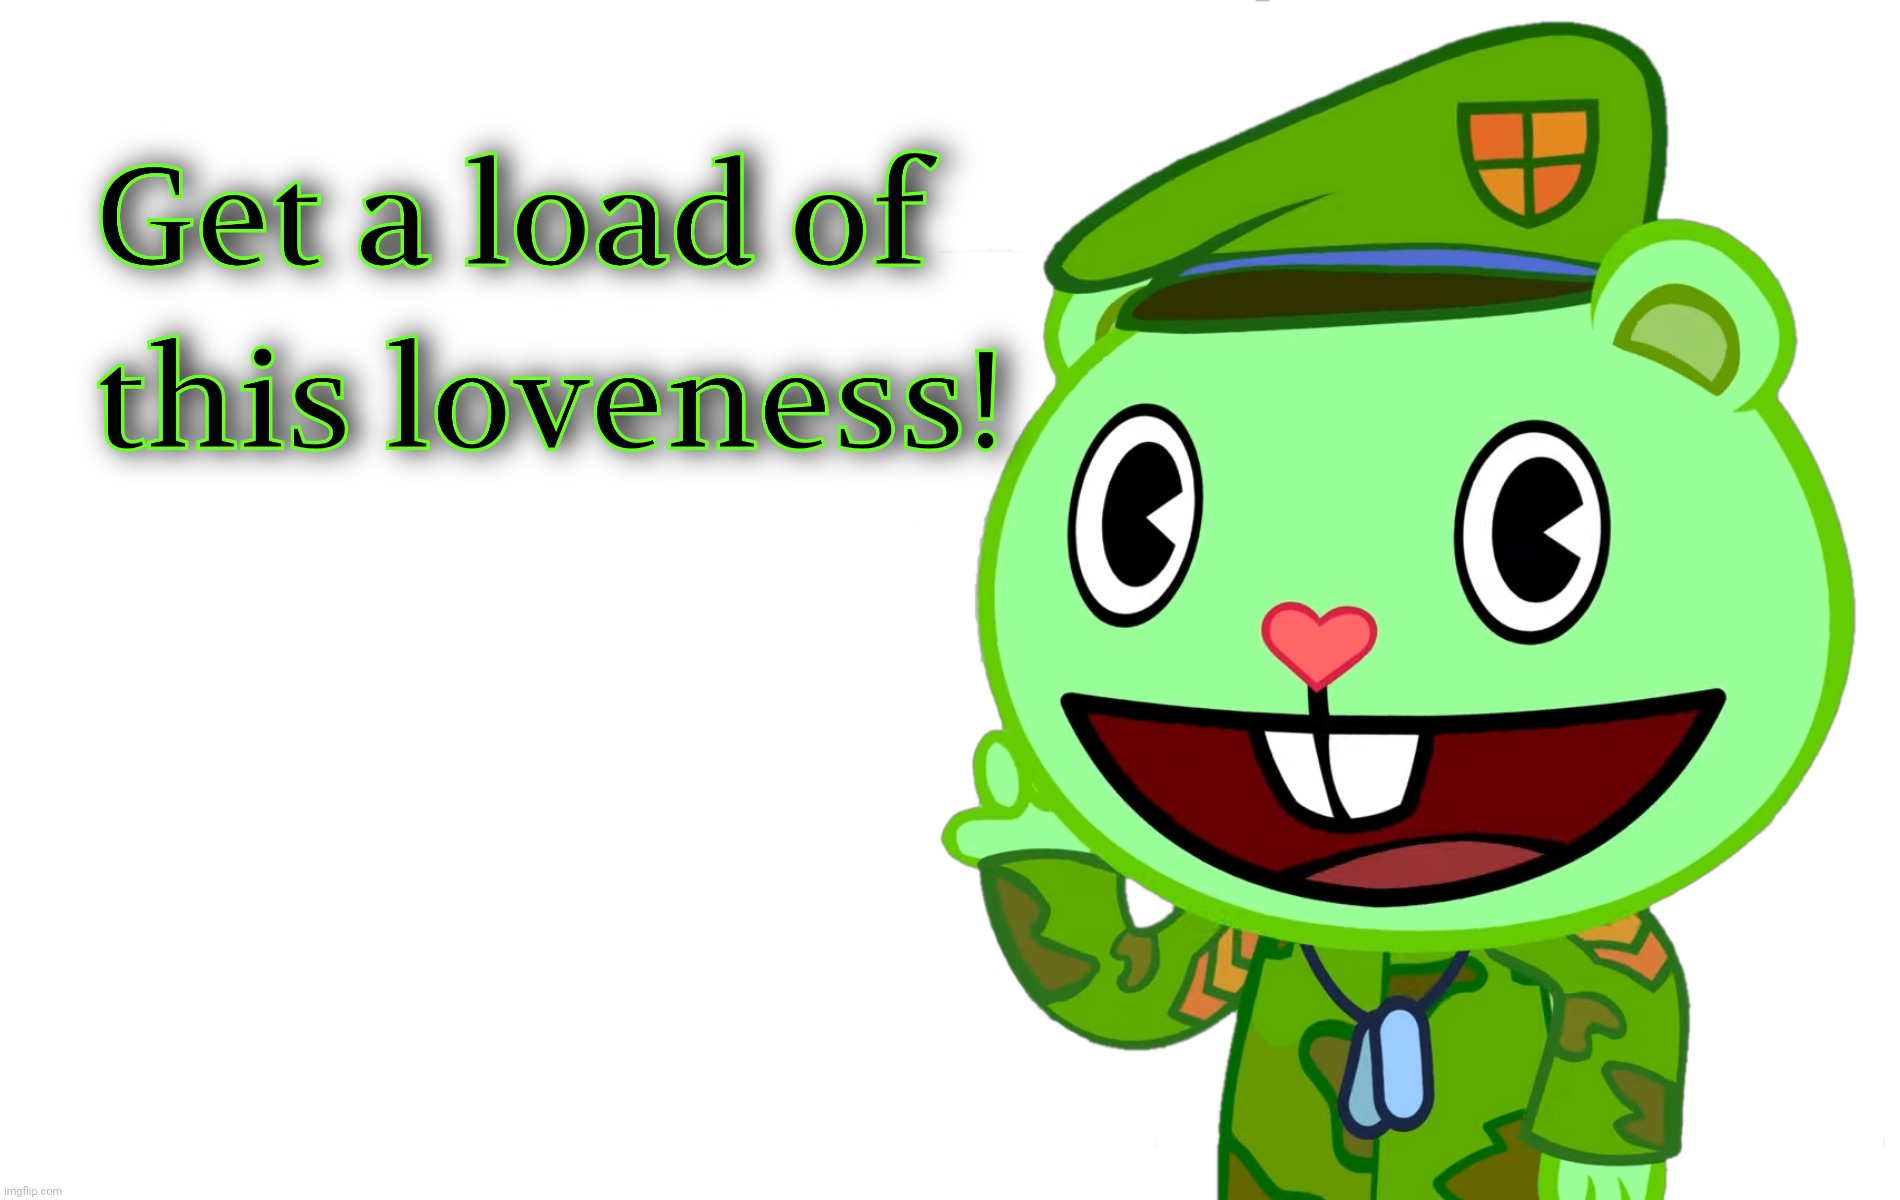 Get a load of this loveness! (HTF) | image tagged in get a load of this loveness htf | made w/ Imgflip meme maker